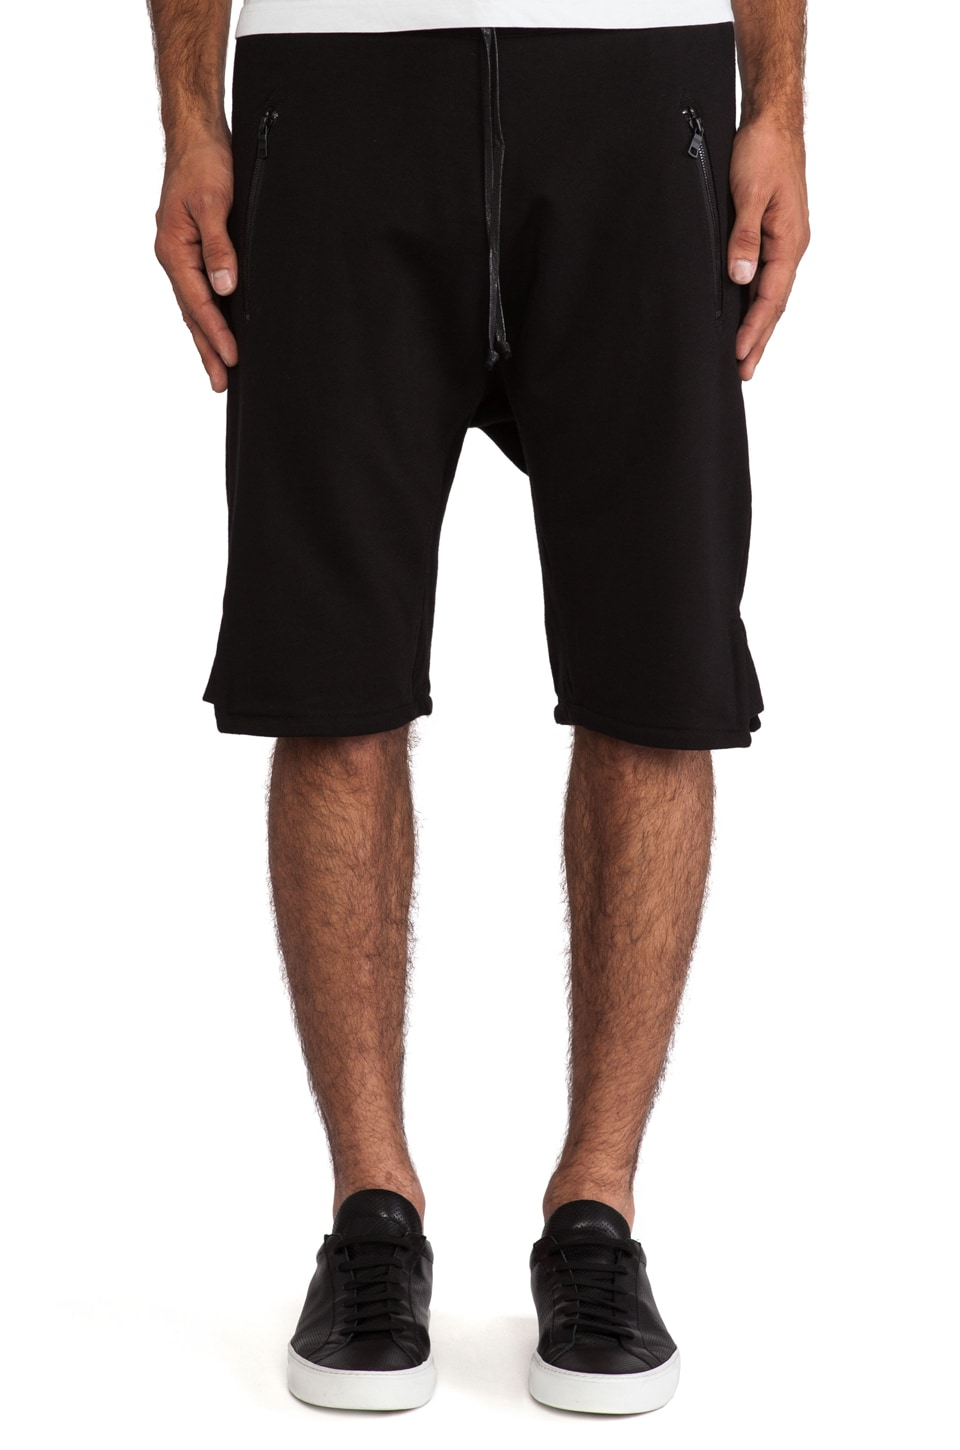 Hudson Jeans Blackout Short in Raw Black